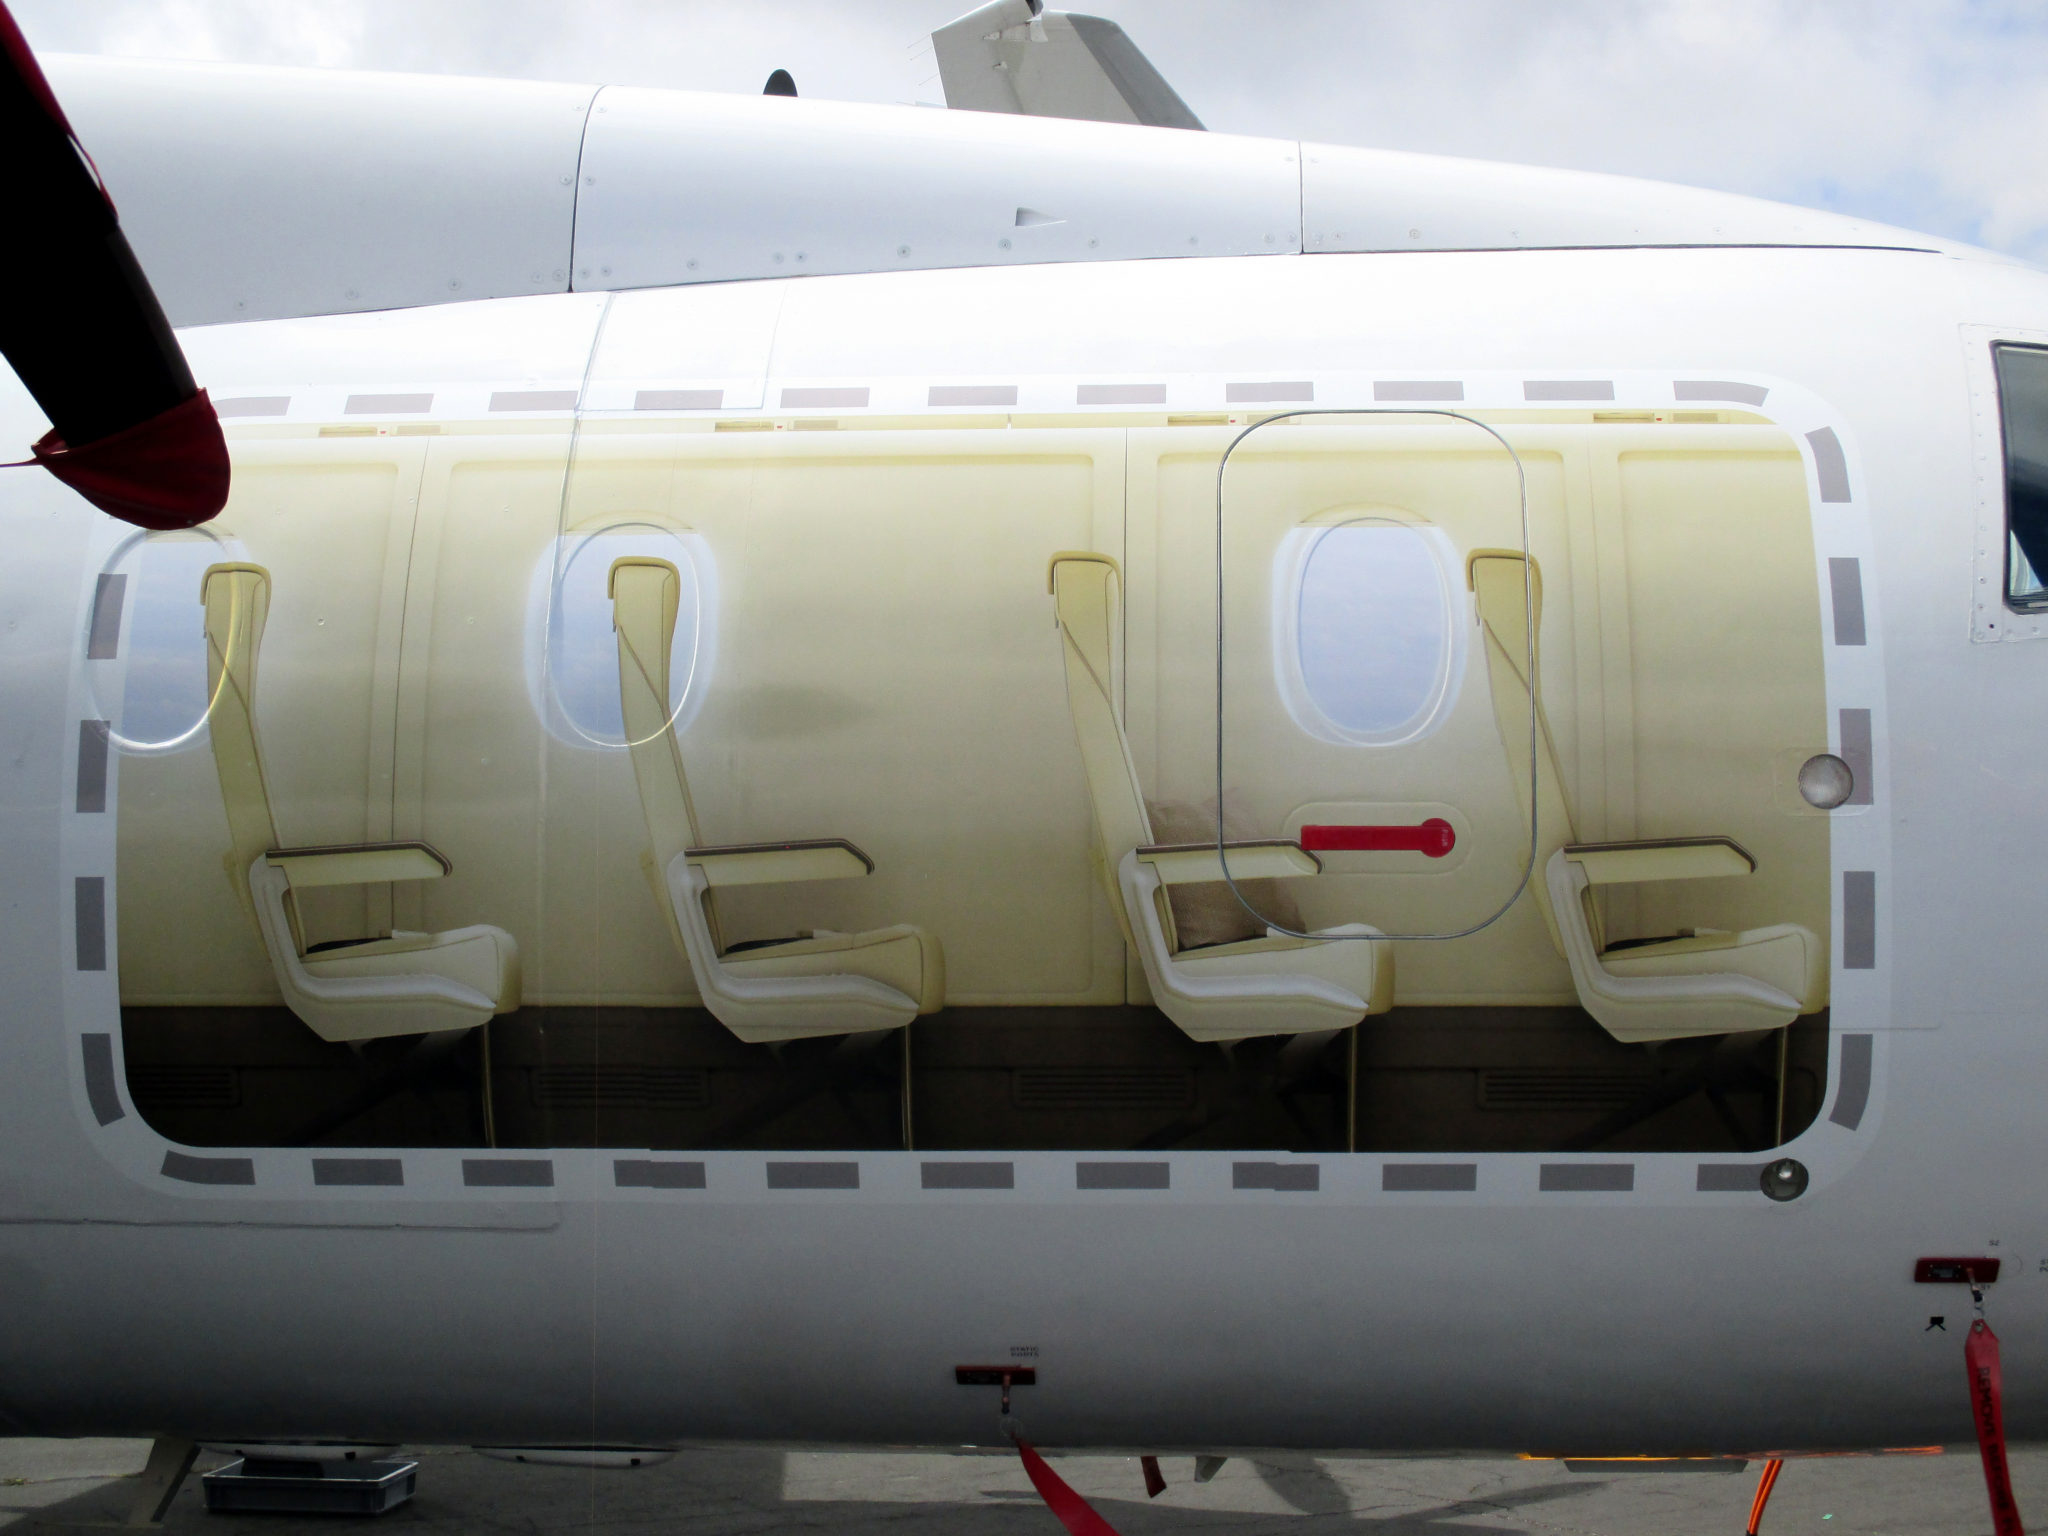 The forward right decal gave a look into the 328 in regional airliner configuration, with 32 seats. Image: Paul Eden